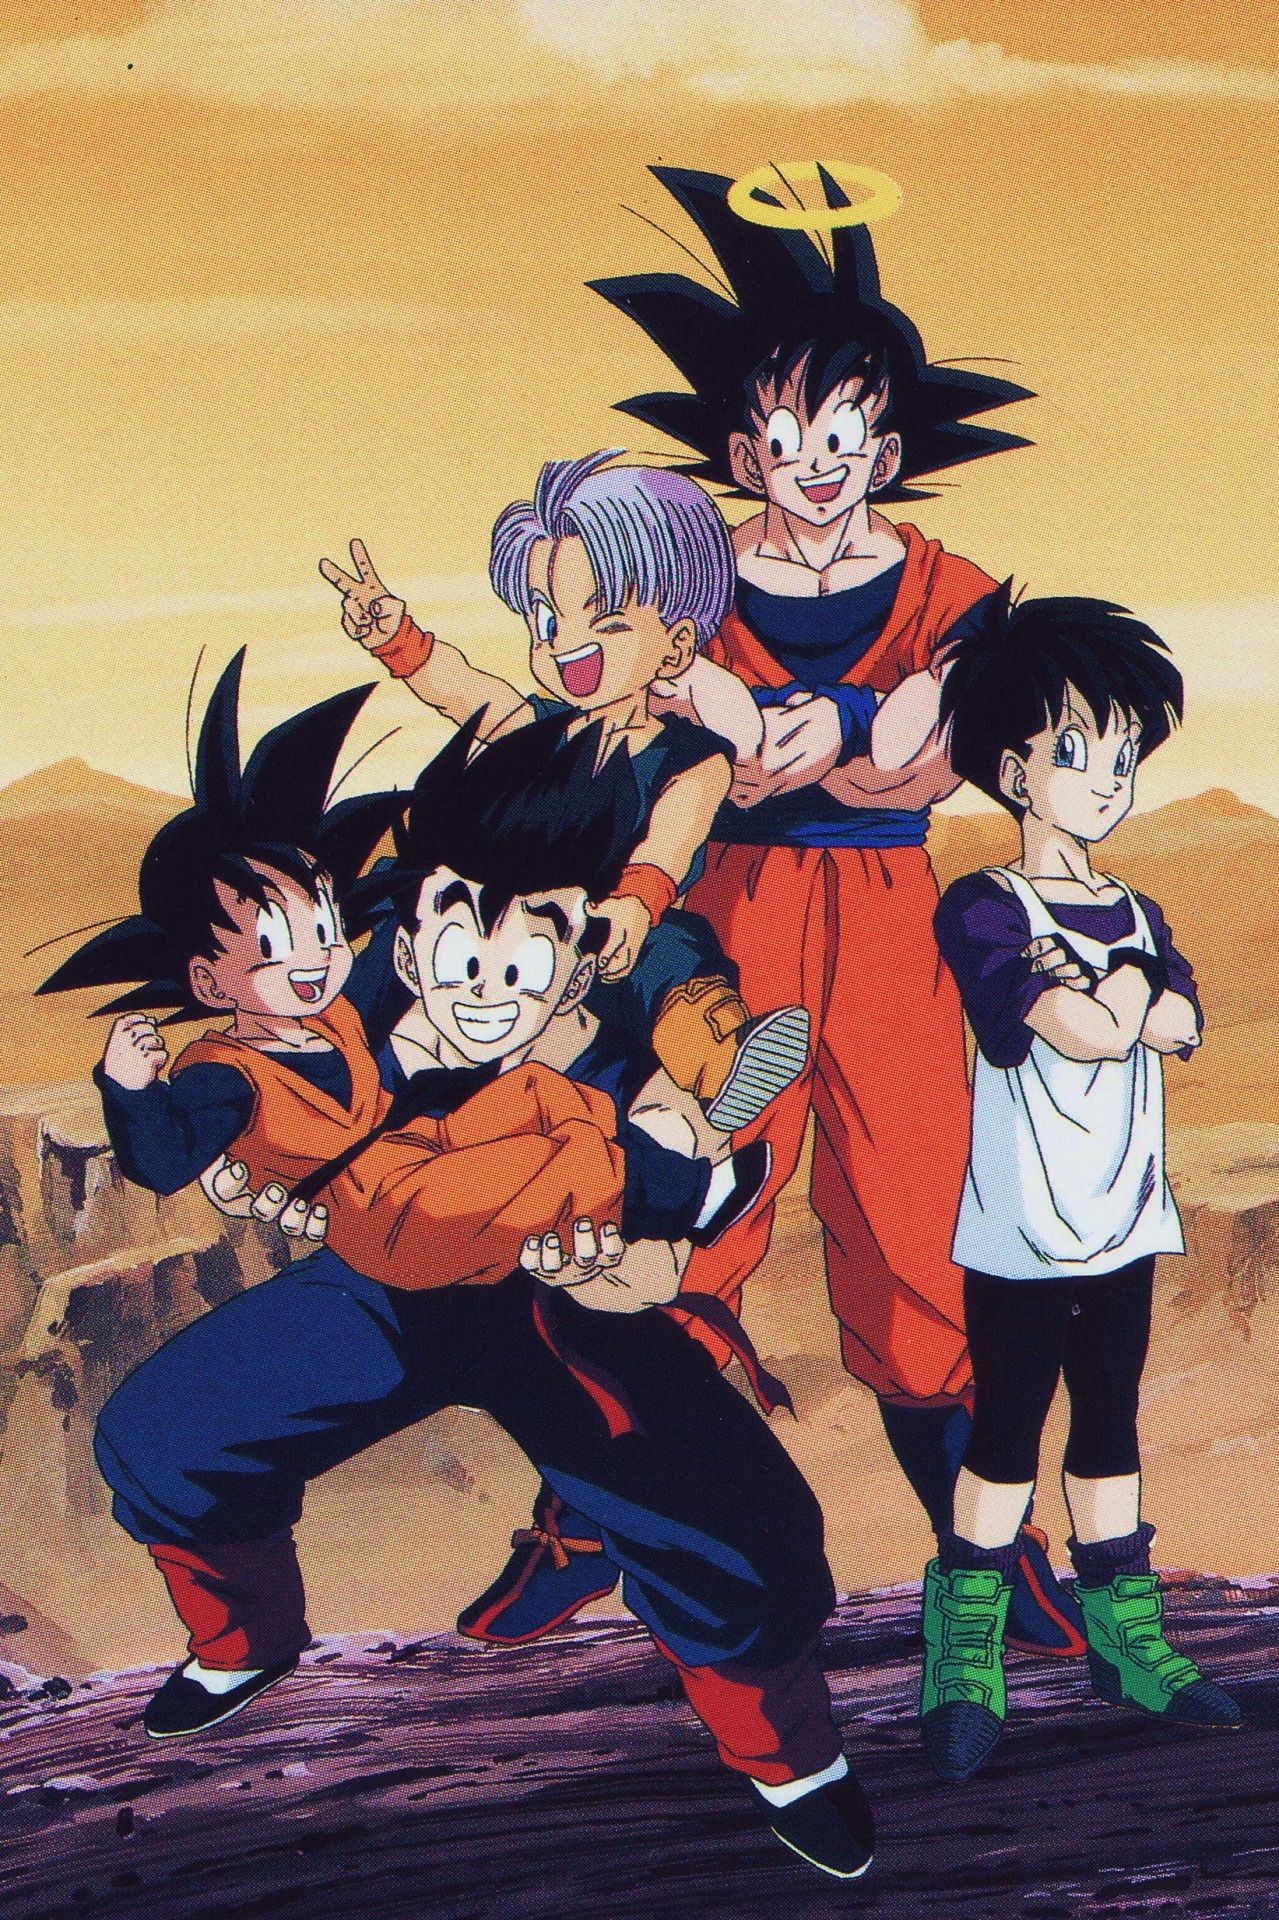 Goku Gohan Goten Trunks And Videl Data Src Gohan Goten Dragon Ball 1279x1920 Download Hd Wallpaper Wallpapertip